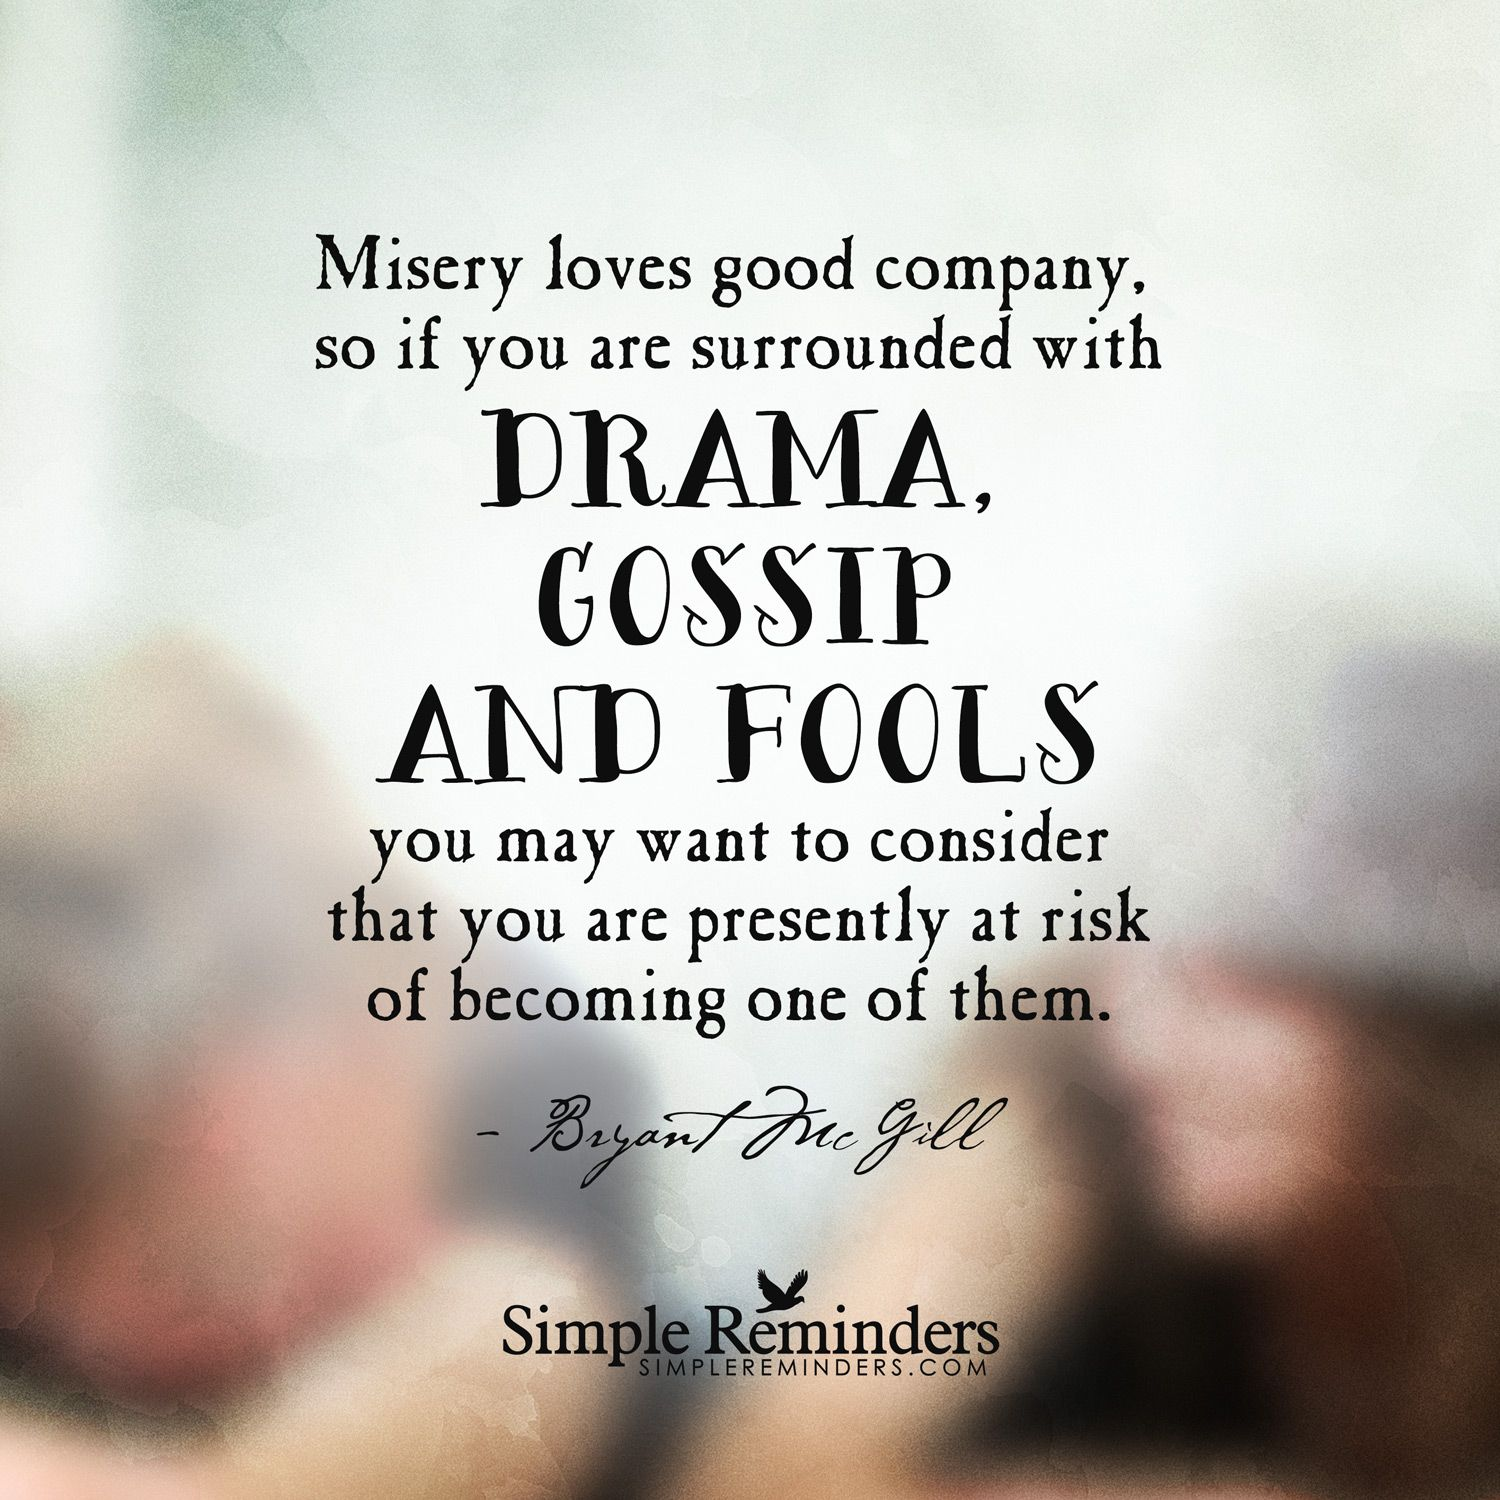 Misery Loves Company Quotes Pleasing Misery Loves Good Company So If You Are Surrounded With Drama Gos . Design Ideas